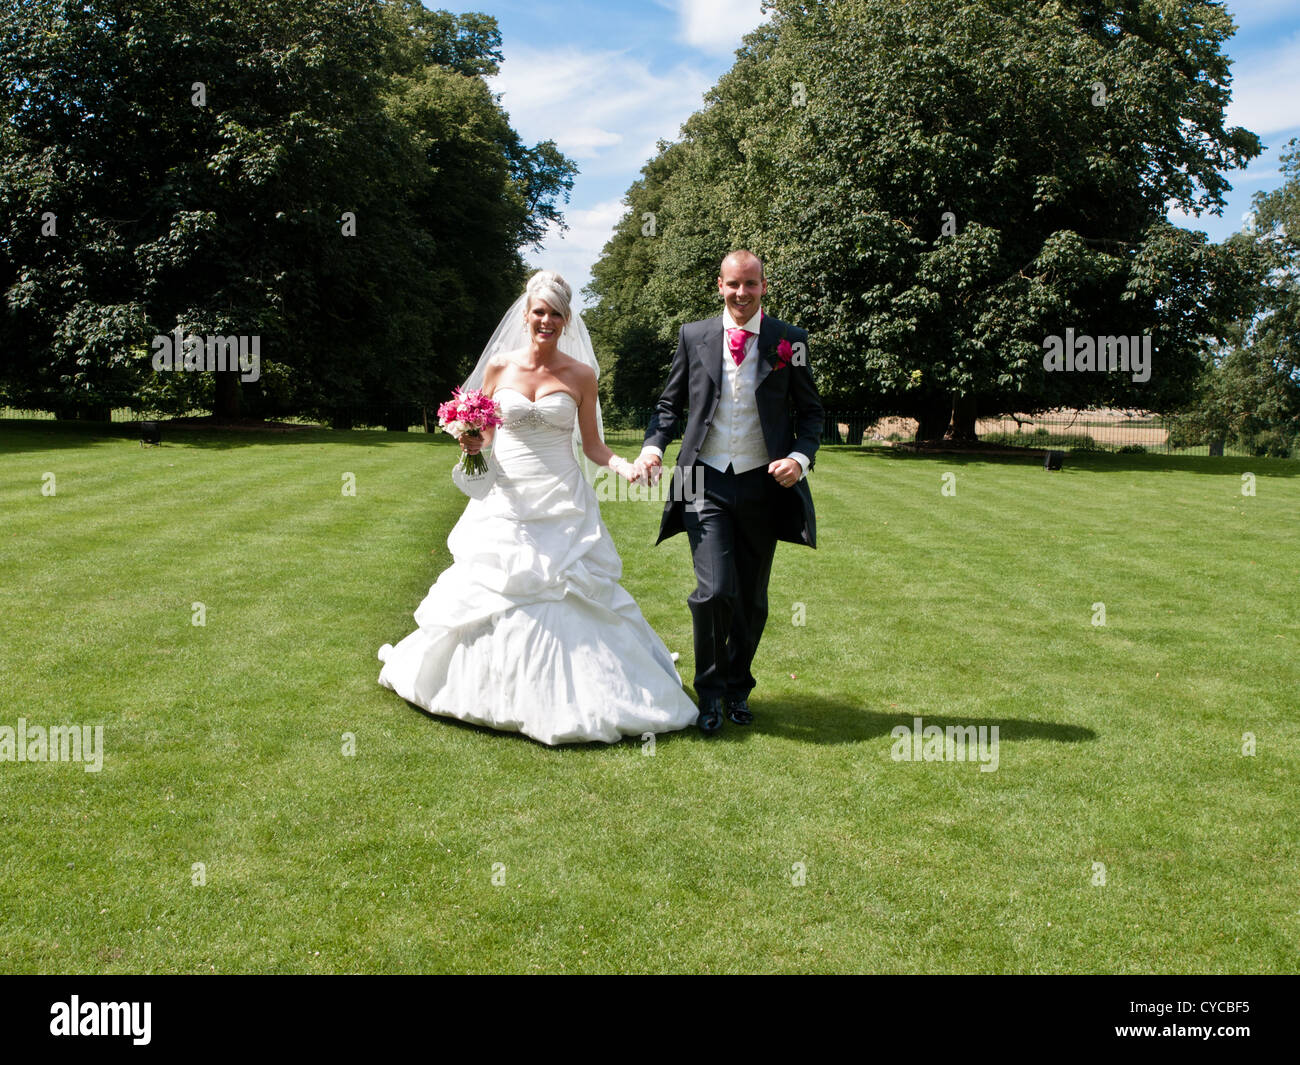 A newly wedded bride and groom stroll hand-in-hand through glorious green gardens on their wedding day - Stock Image